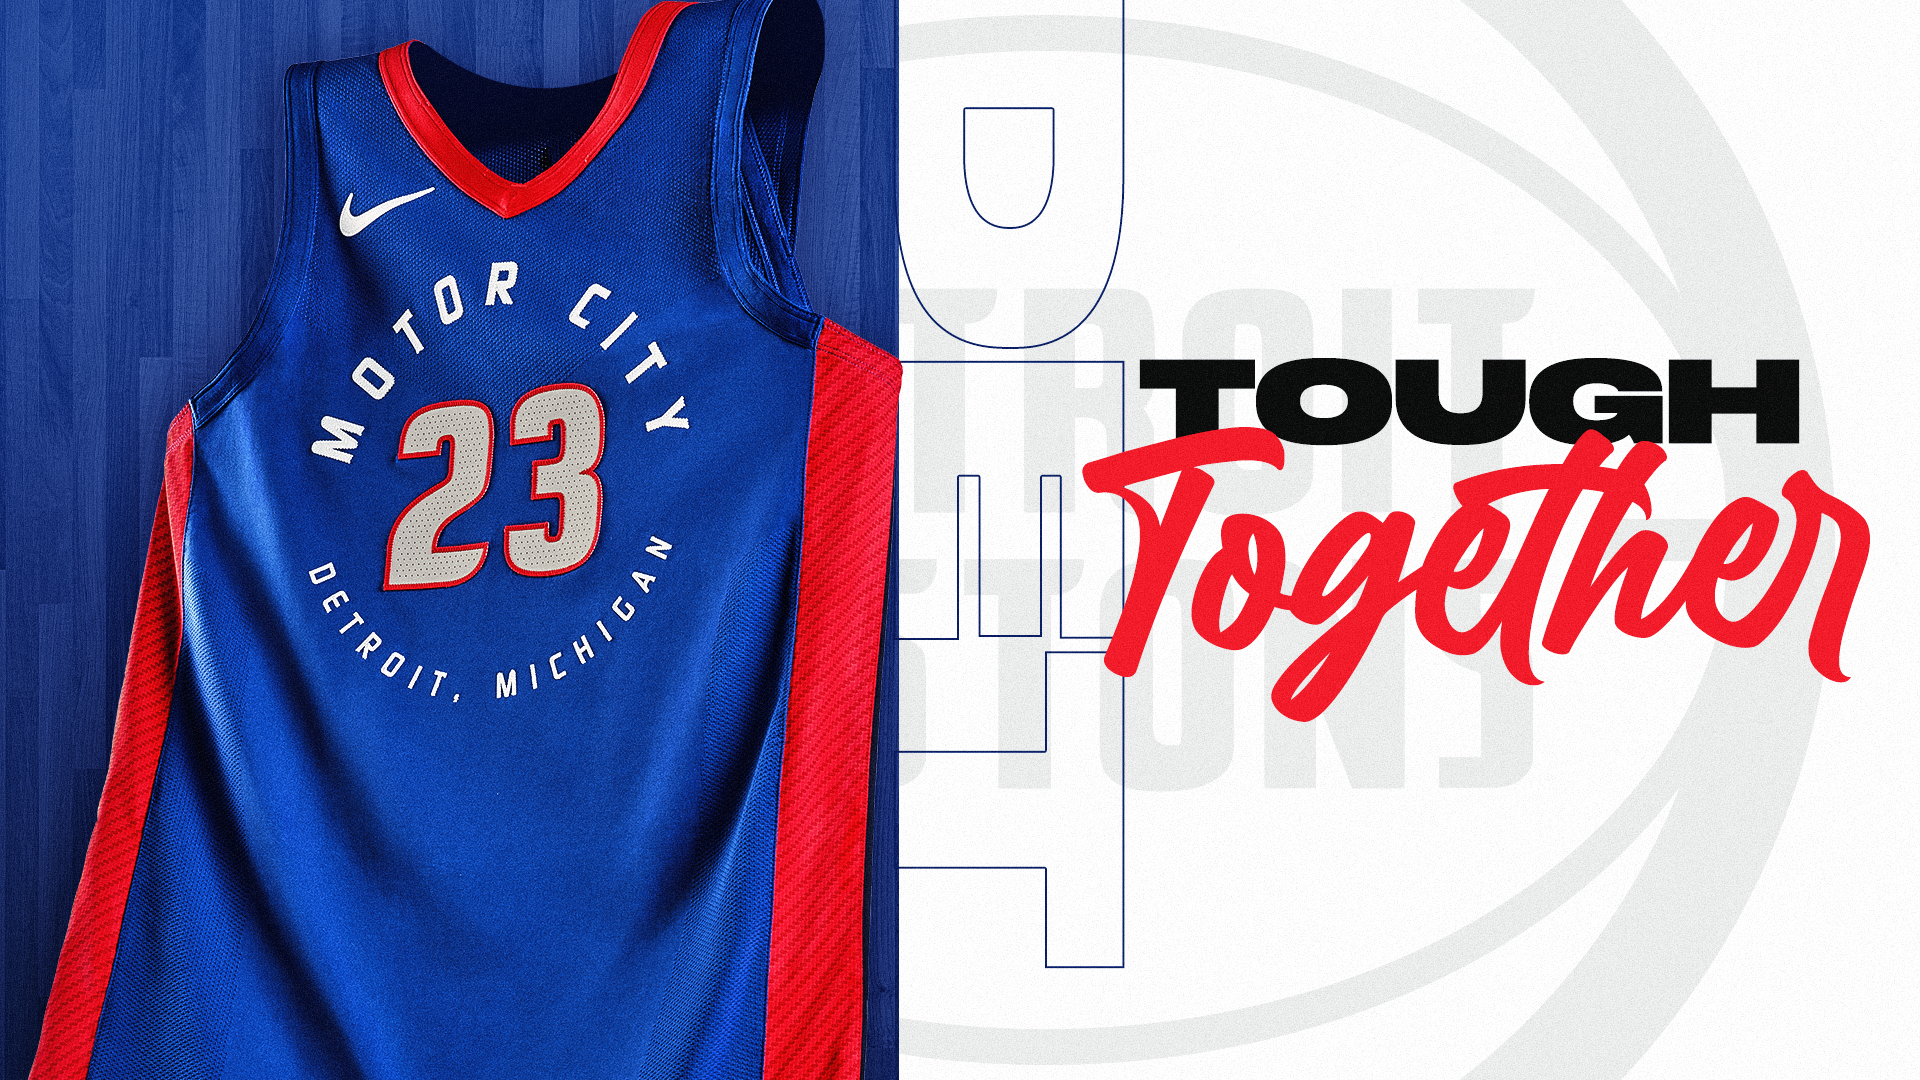 Detroit Pistons: Tough Together